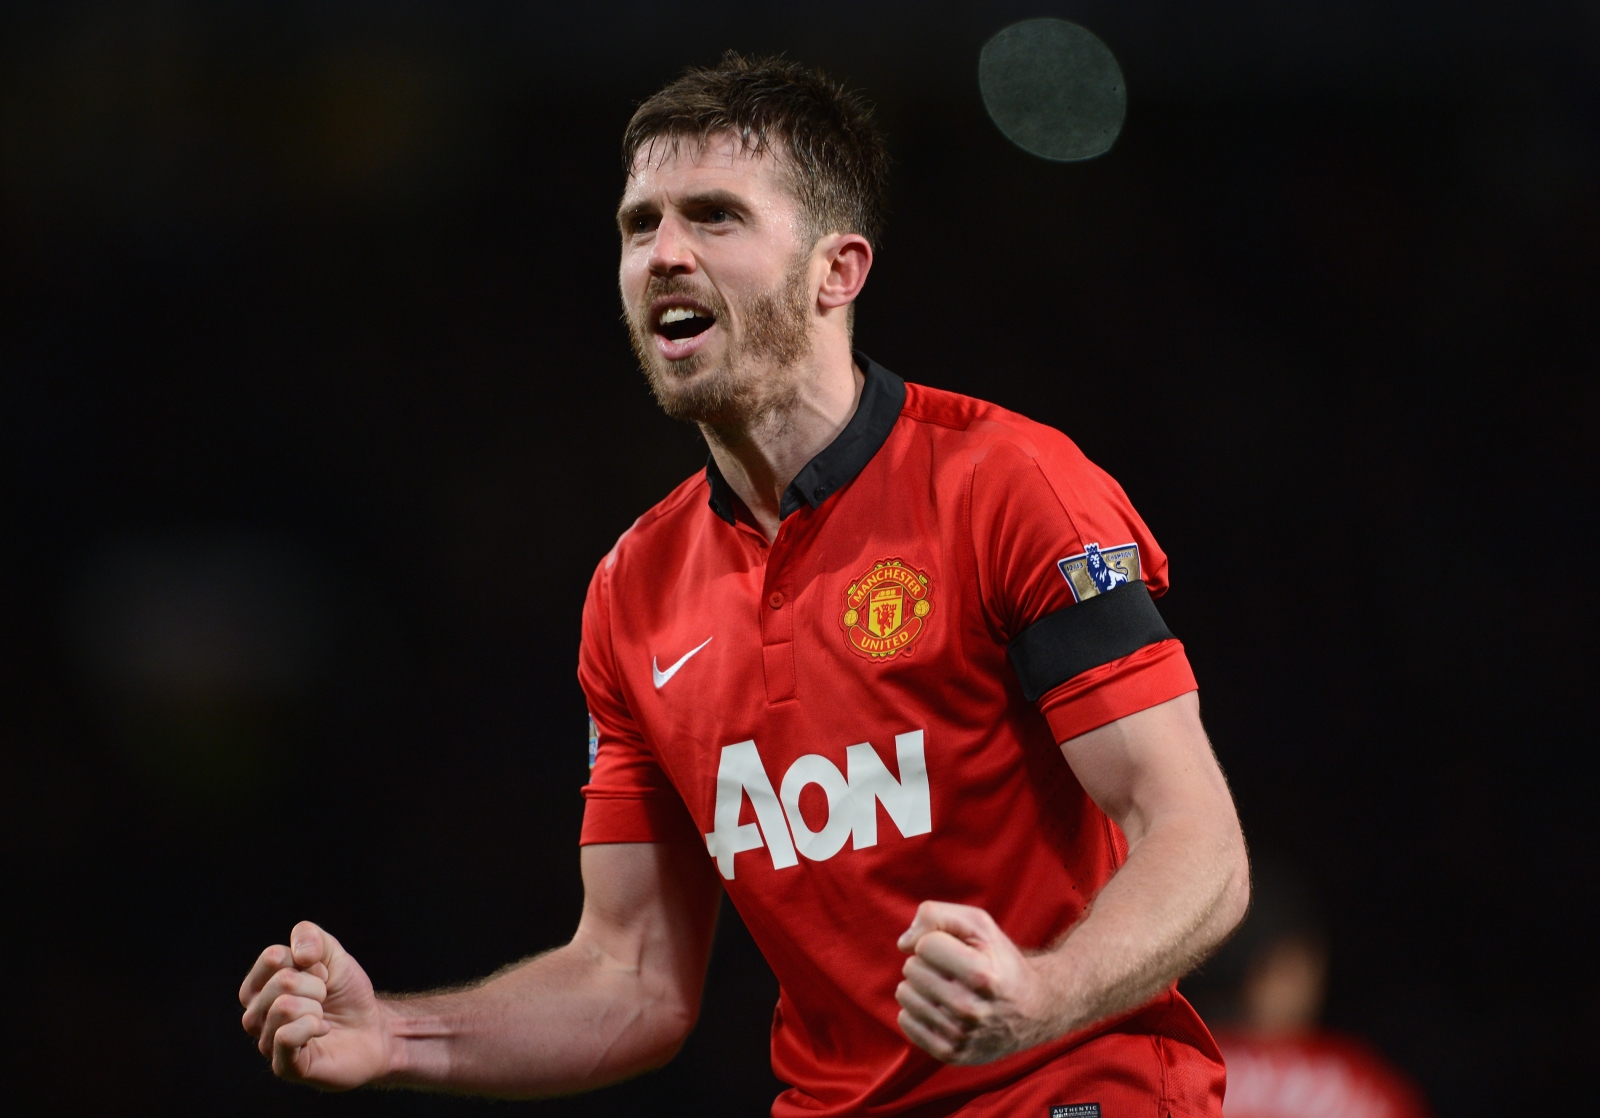 Manchester United Injury News: Michael Carrick Expected to Make the Bench for West Bromwich Albion Clash